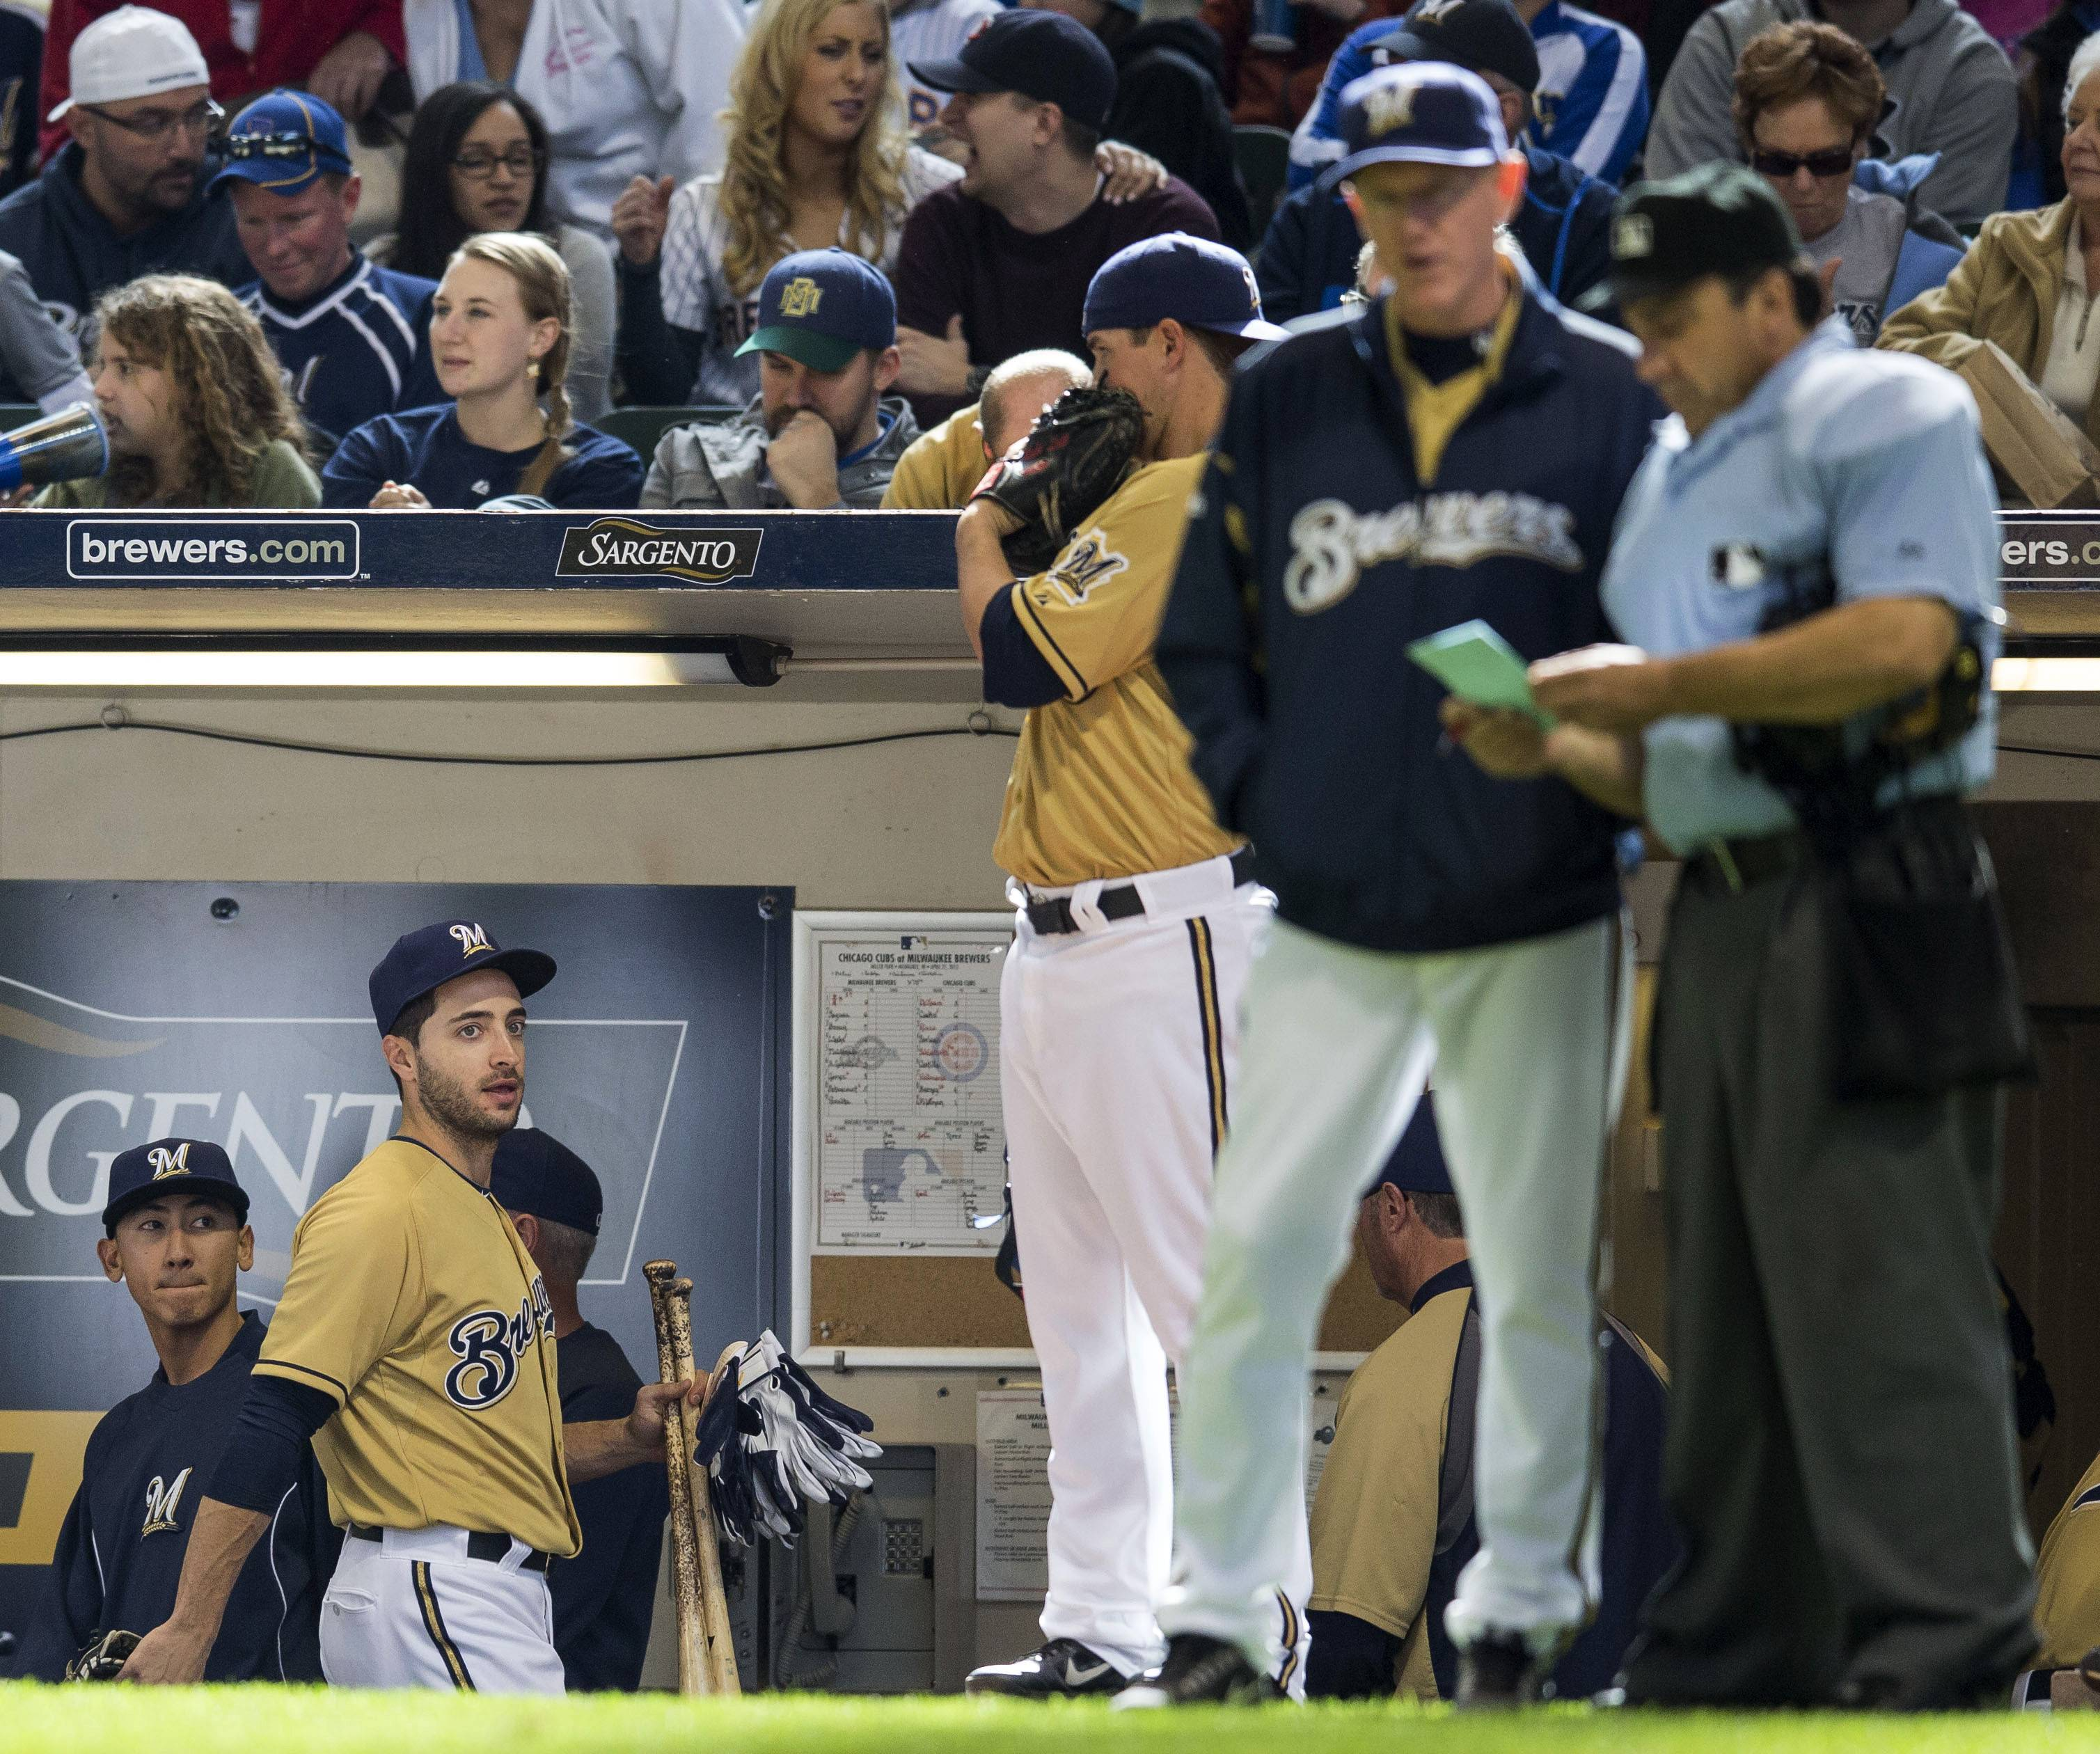 The Brewers' Ryan Braun gathers his equipment and stares at the umpire after his ejection Sunday at home against the Cubs.